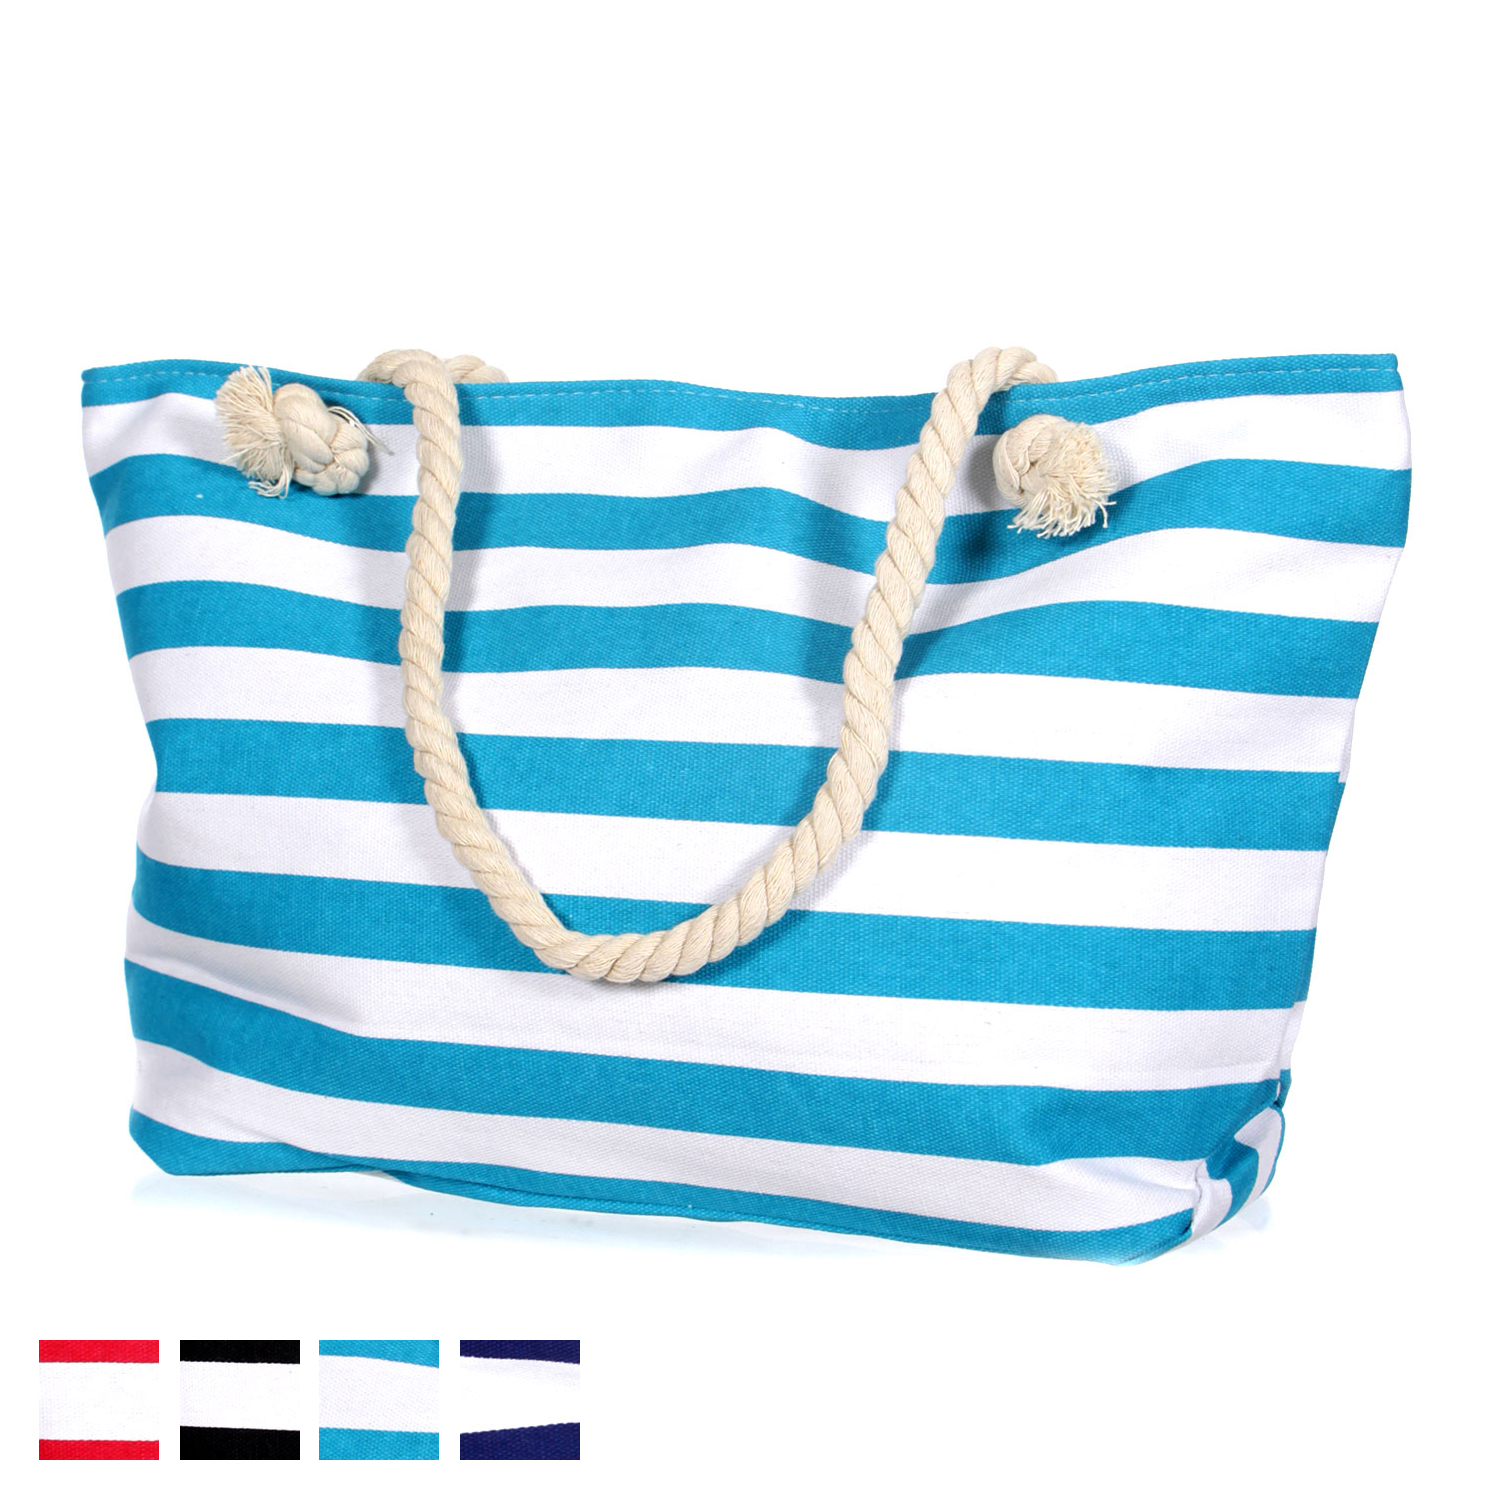 ''Striped canvas BEACH BAG (21 X 6 X 12'''')''